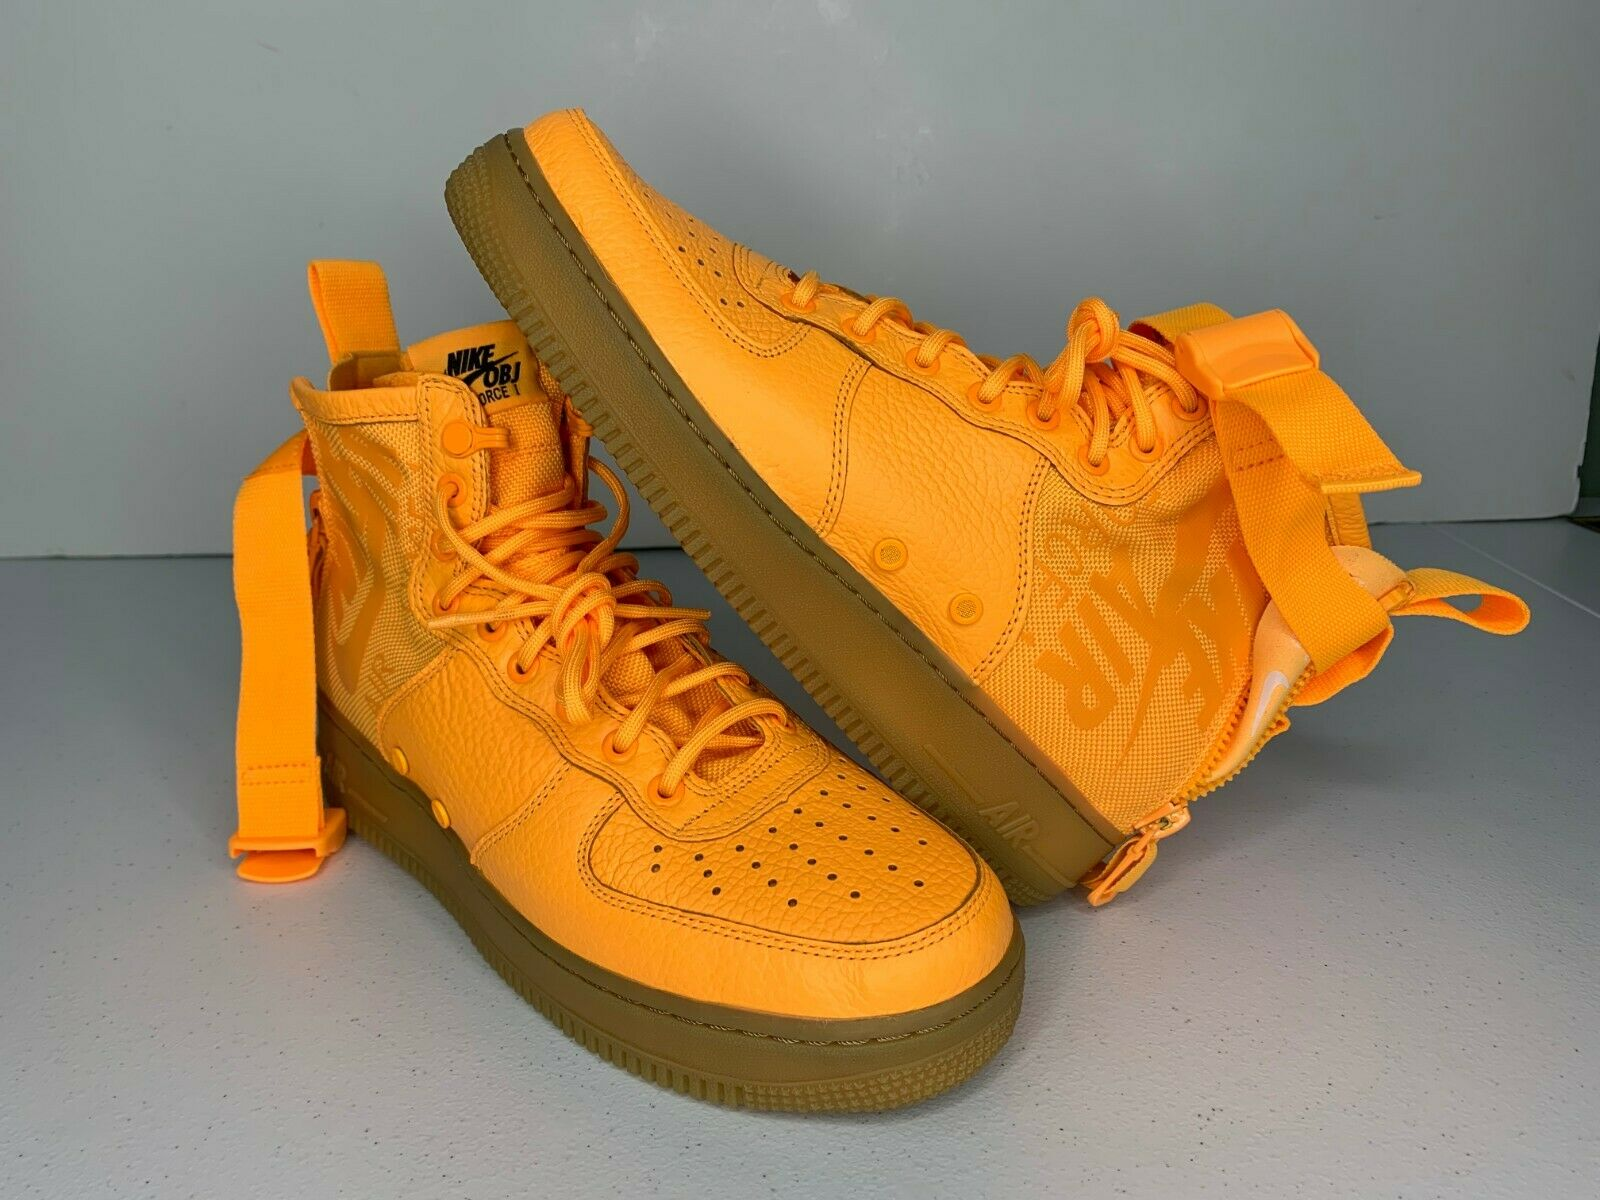 NEW Size 7.5 Nike SF AF1 Air Force 1 Mid OBJ Odell Beckham Jr 917753-801 orange